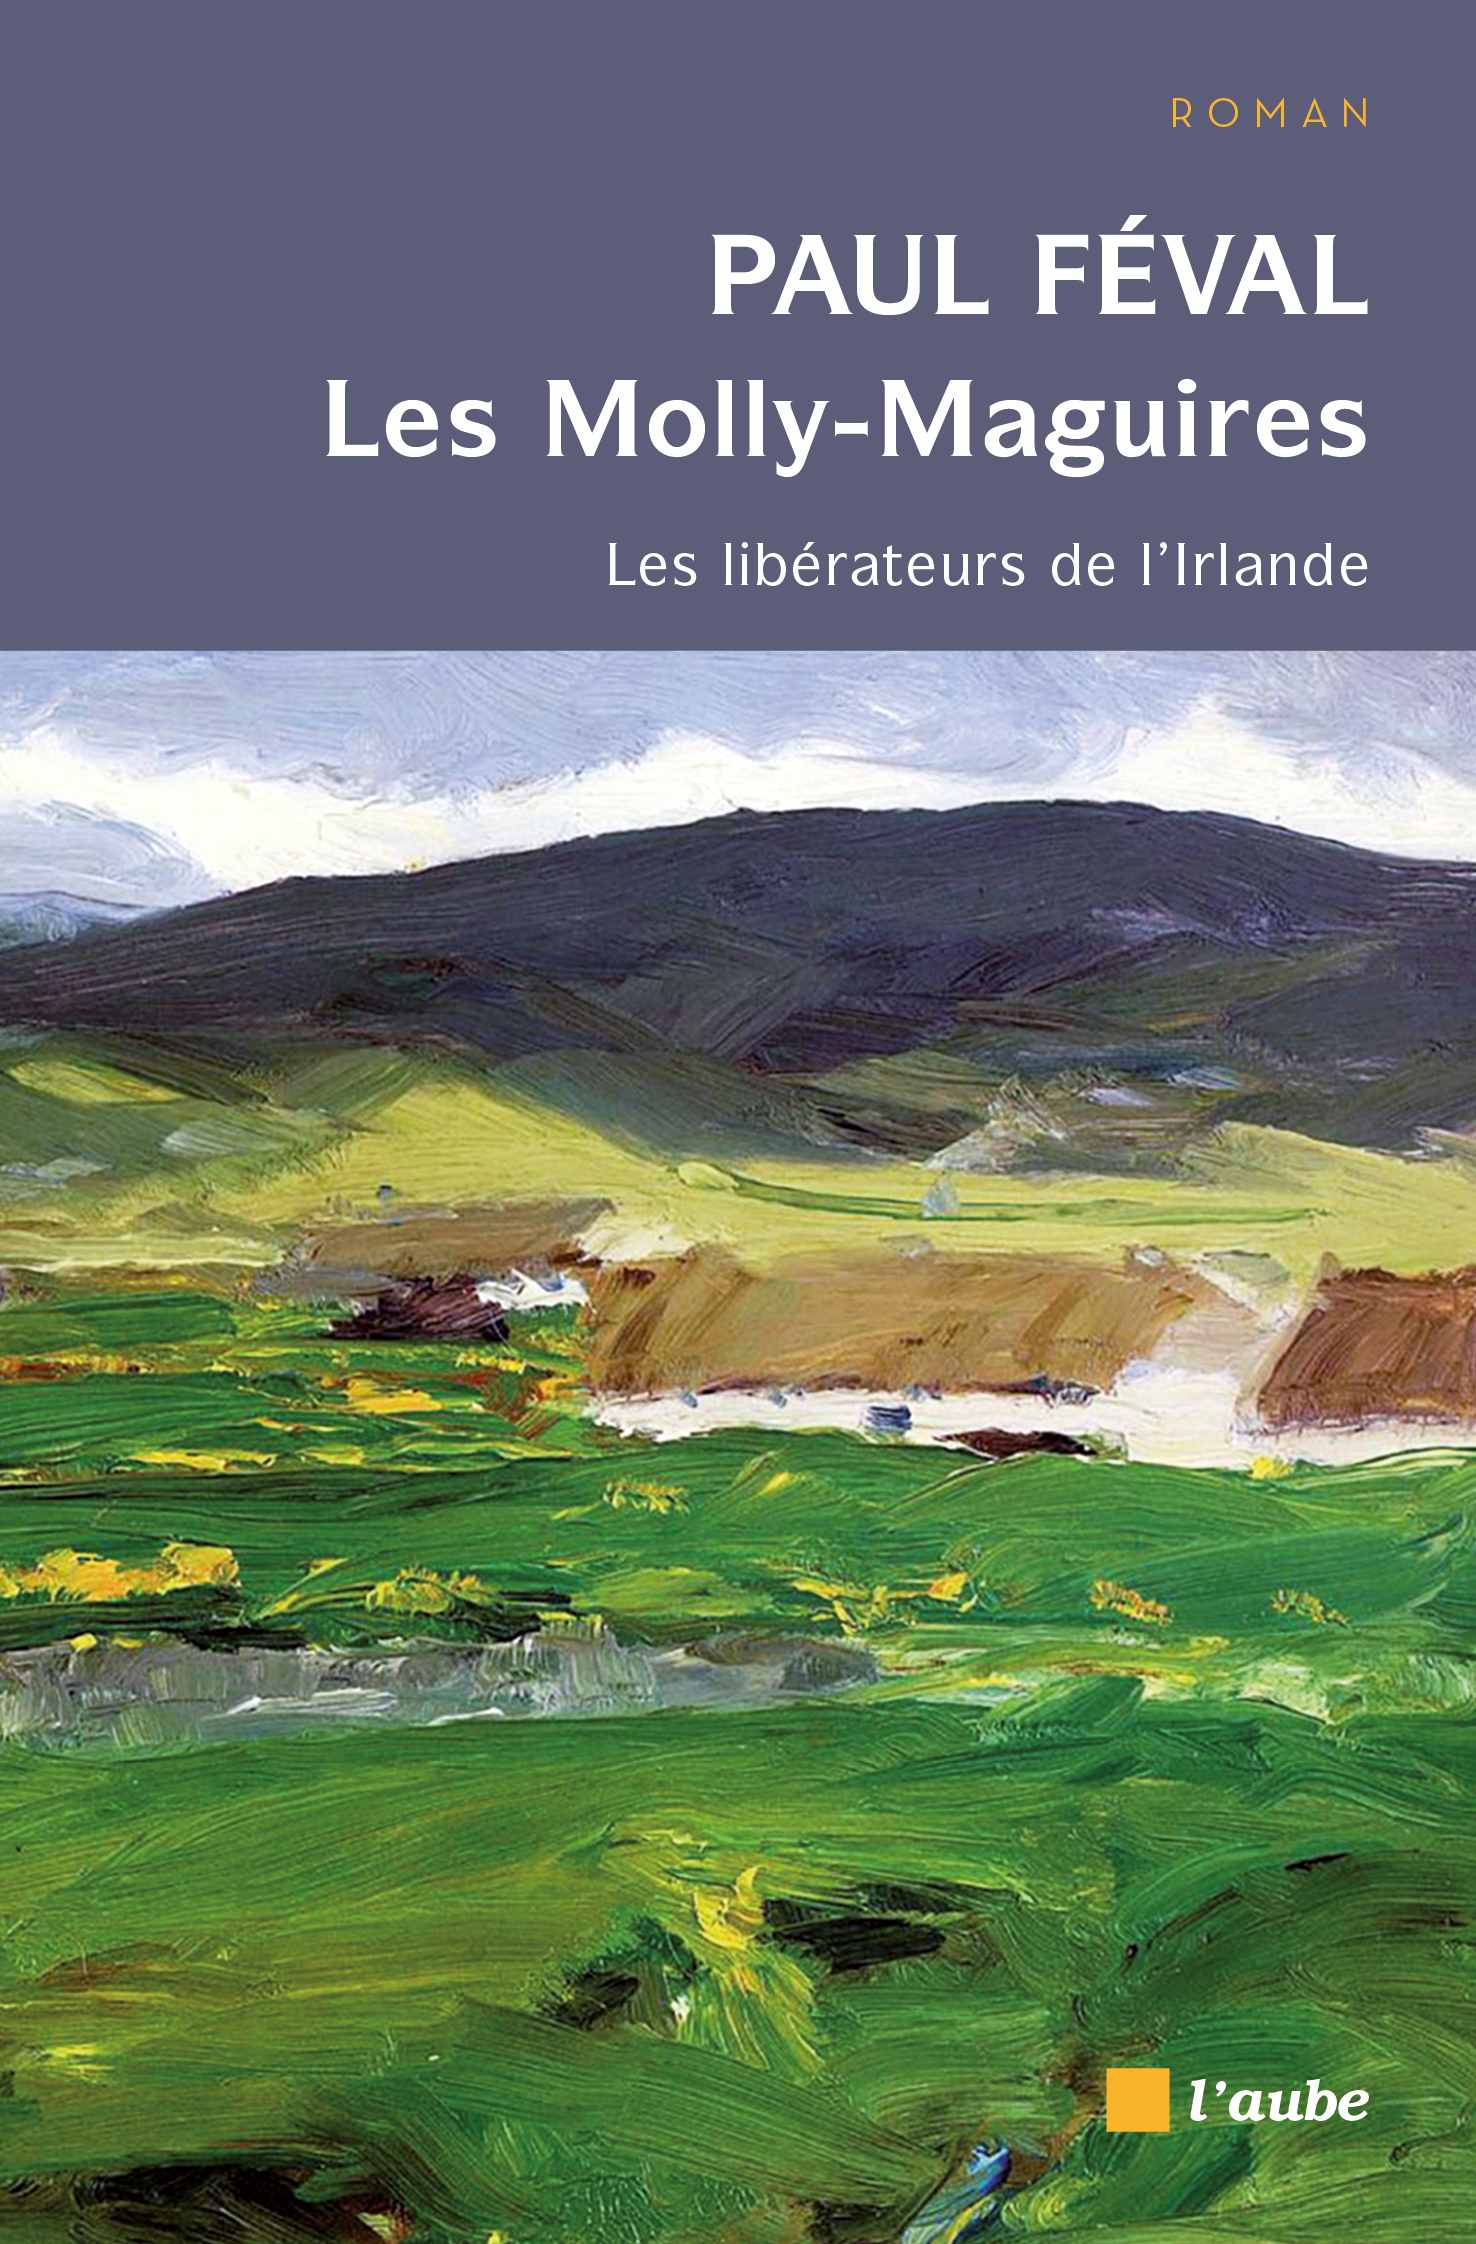 Les Molly-Maguires